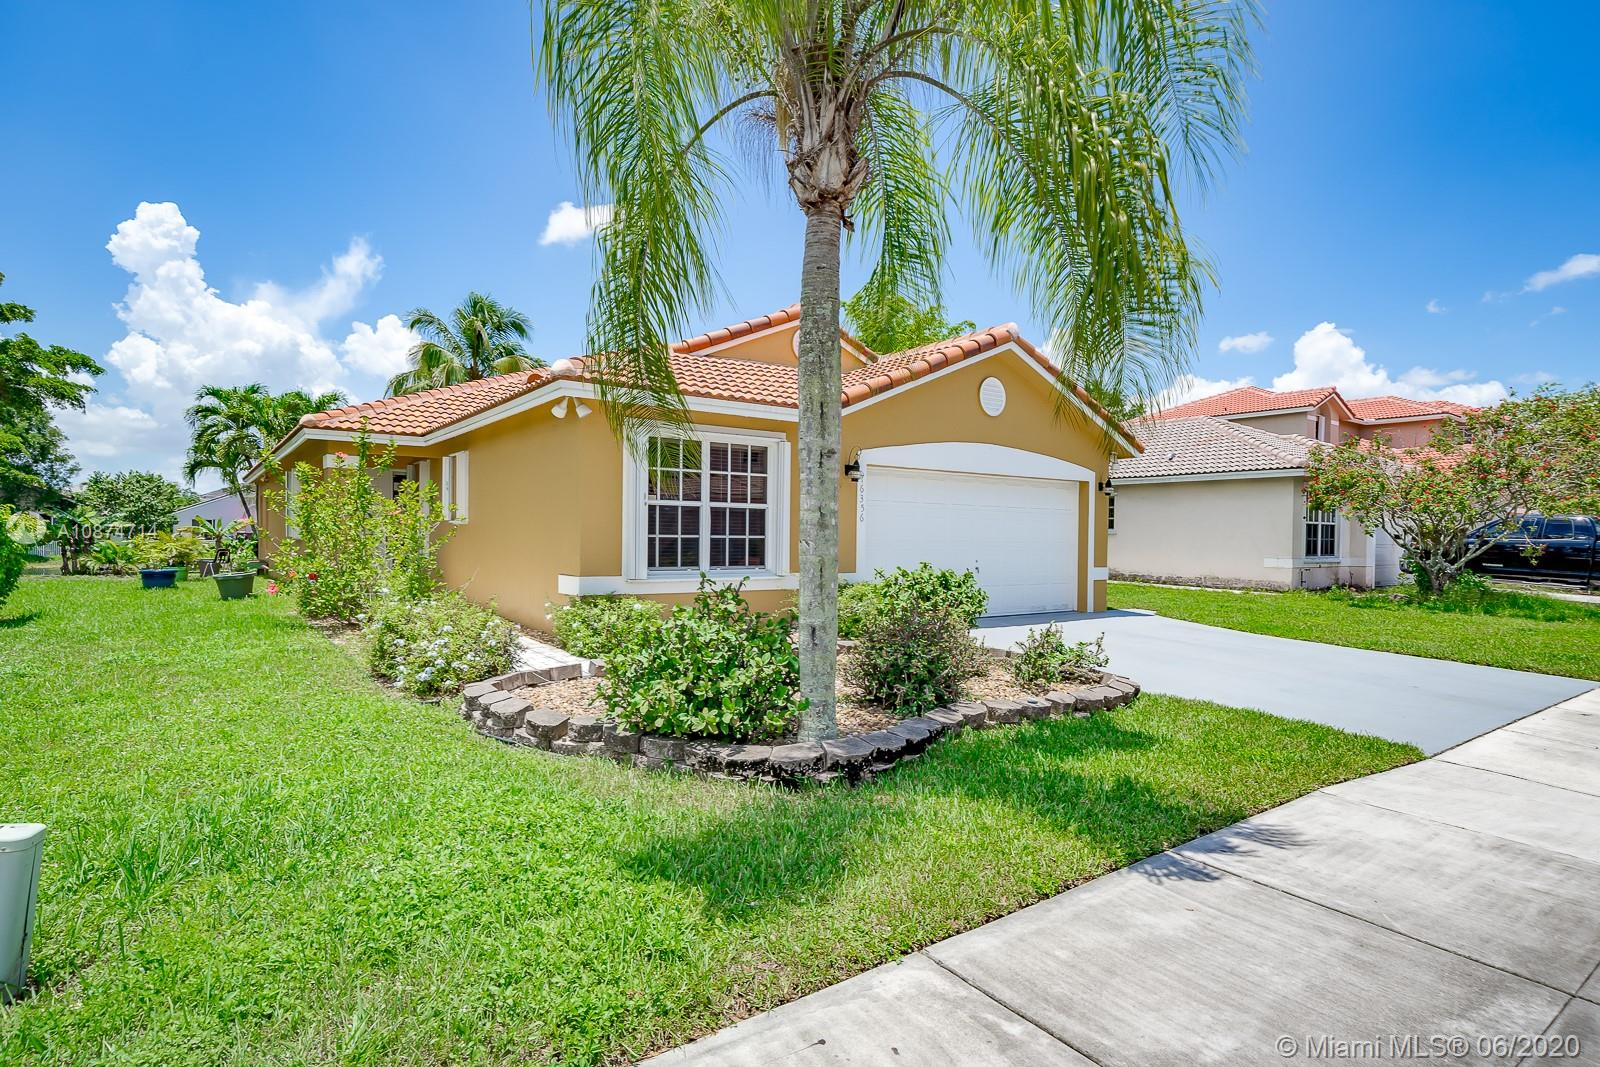 Beautiful lakefront home. Enjoy the cover lanai, gated community with pool and lakes you can fish in. New roof in 2019, New exterior and interior paint in 2019, New Air Handler 2018, New Fence in 2018. New Accordian Hurricane Shutters in 2019 New garage door opener. Star fruit, banana and coconut trees. Updated kitchen and baths